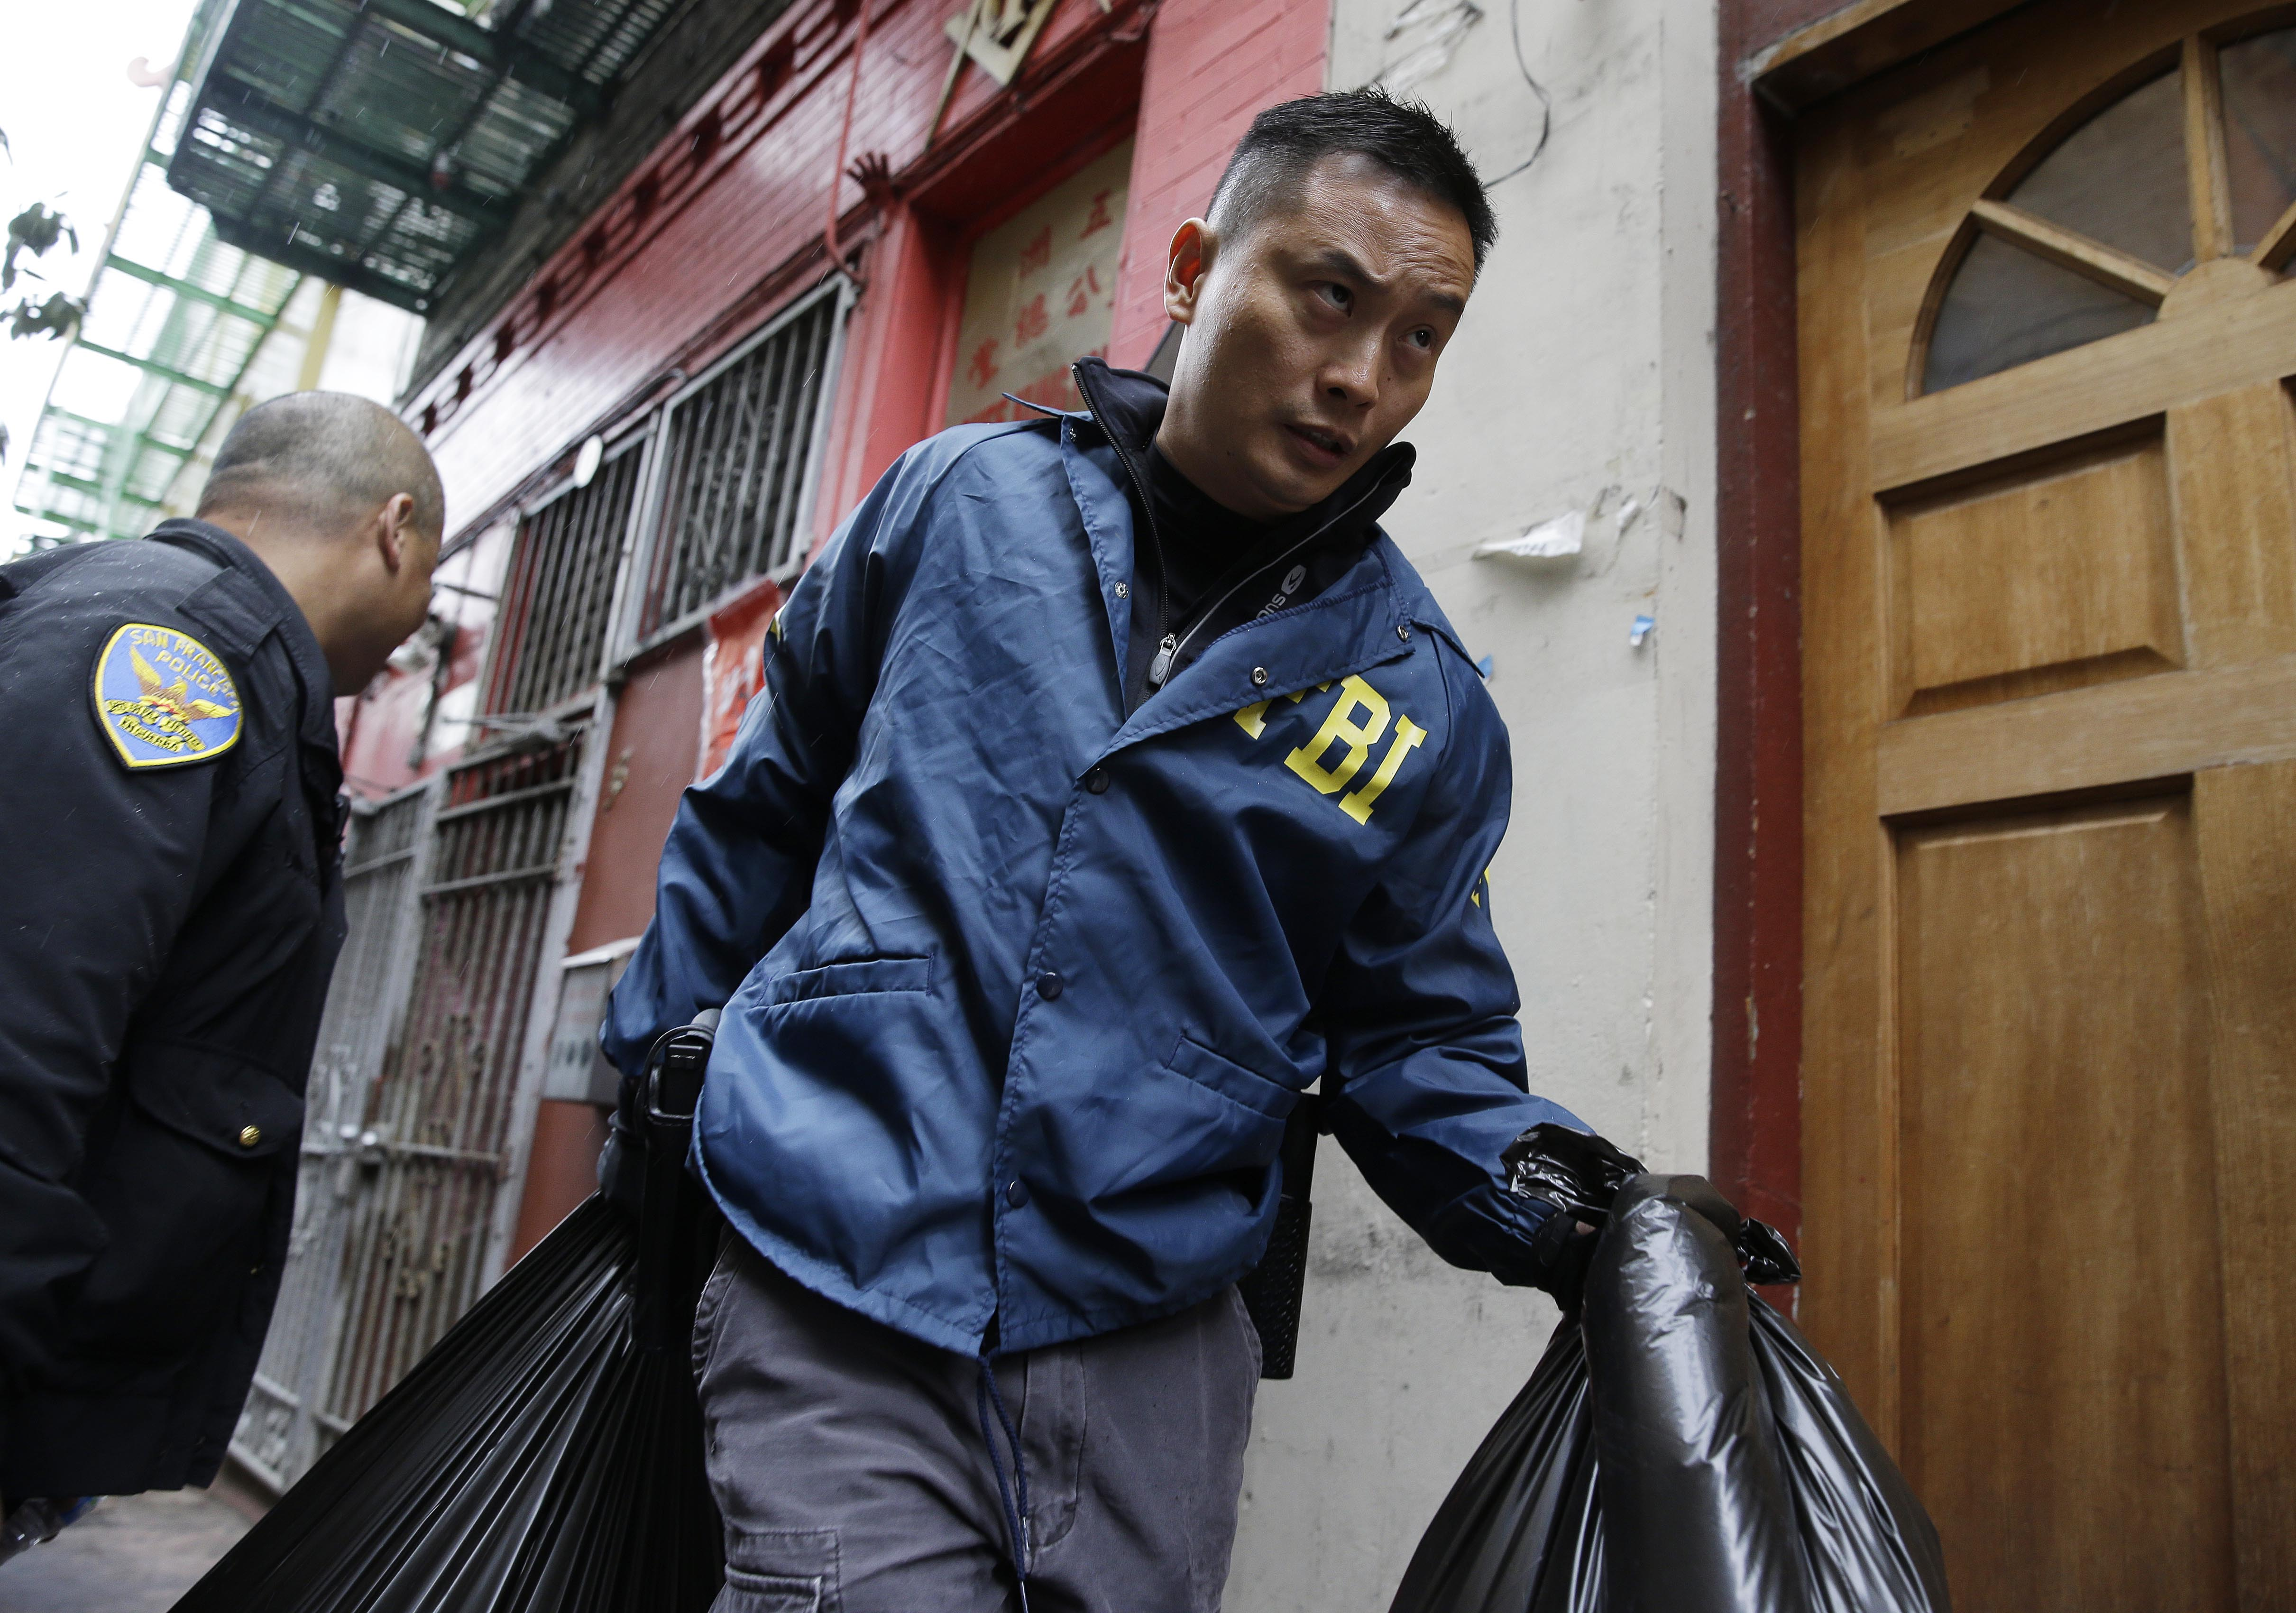 San Francisco - FBI Sting Shows San Francisco Chinatown Underworld     											    				More of today's headlines